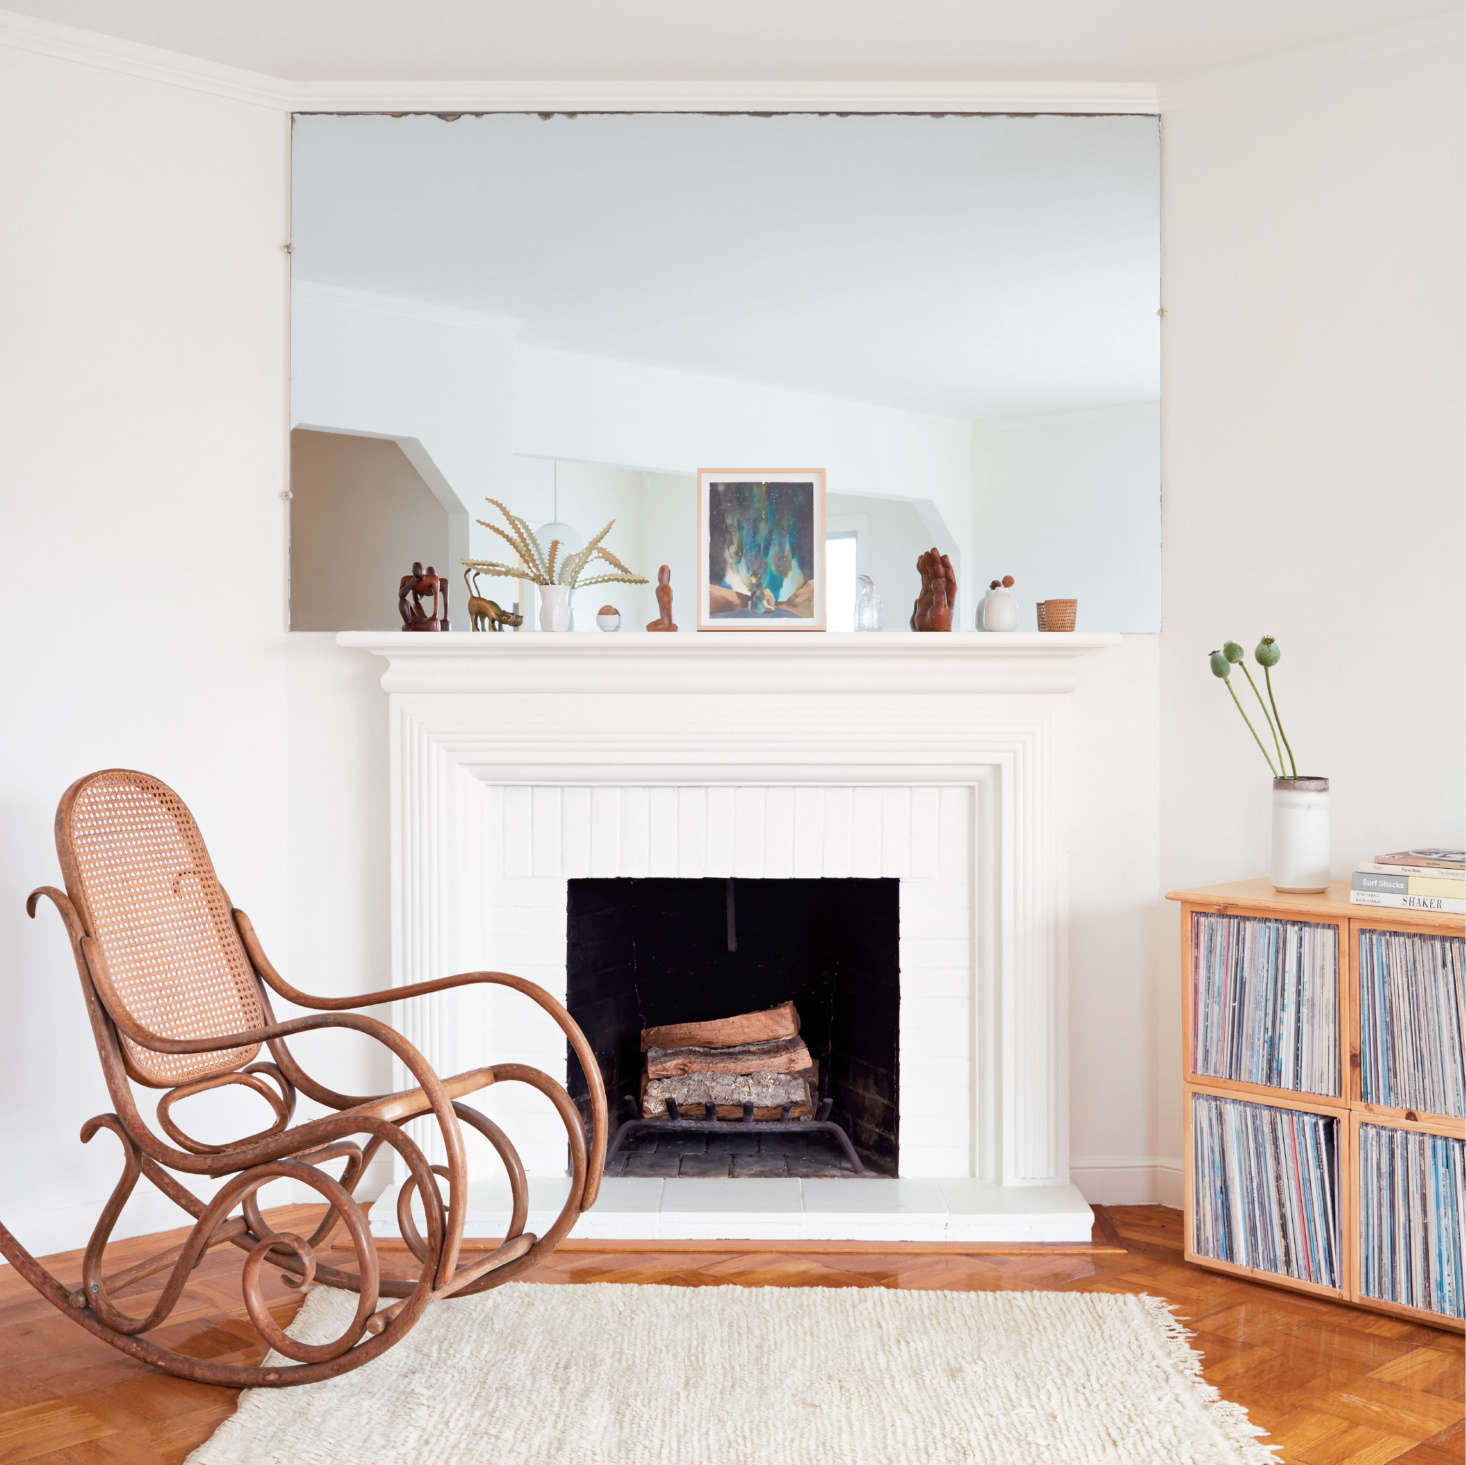 A fireplace is an opportunity for vignettes.